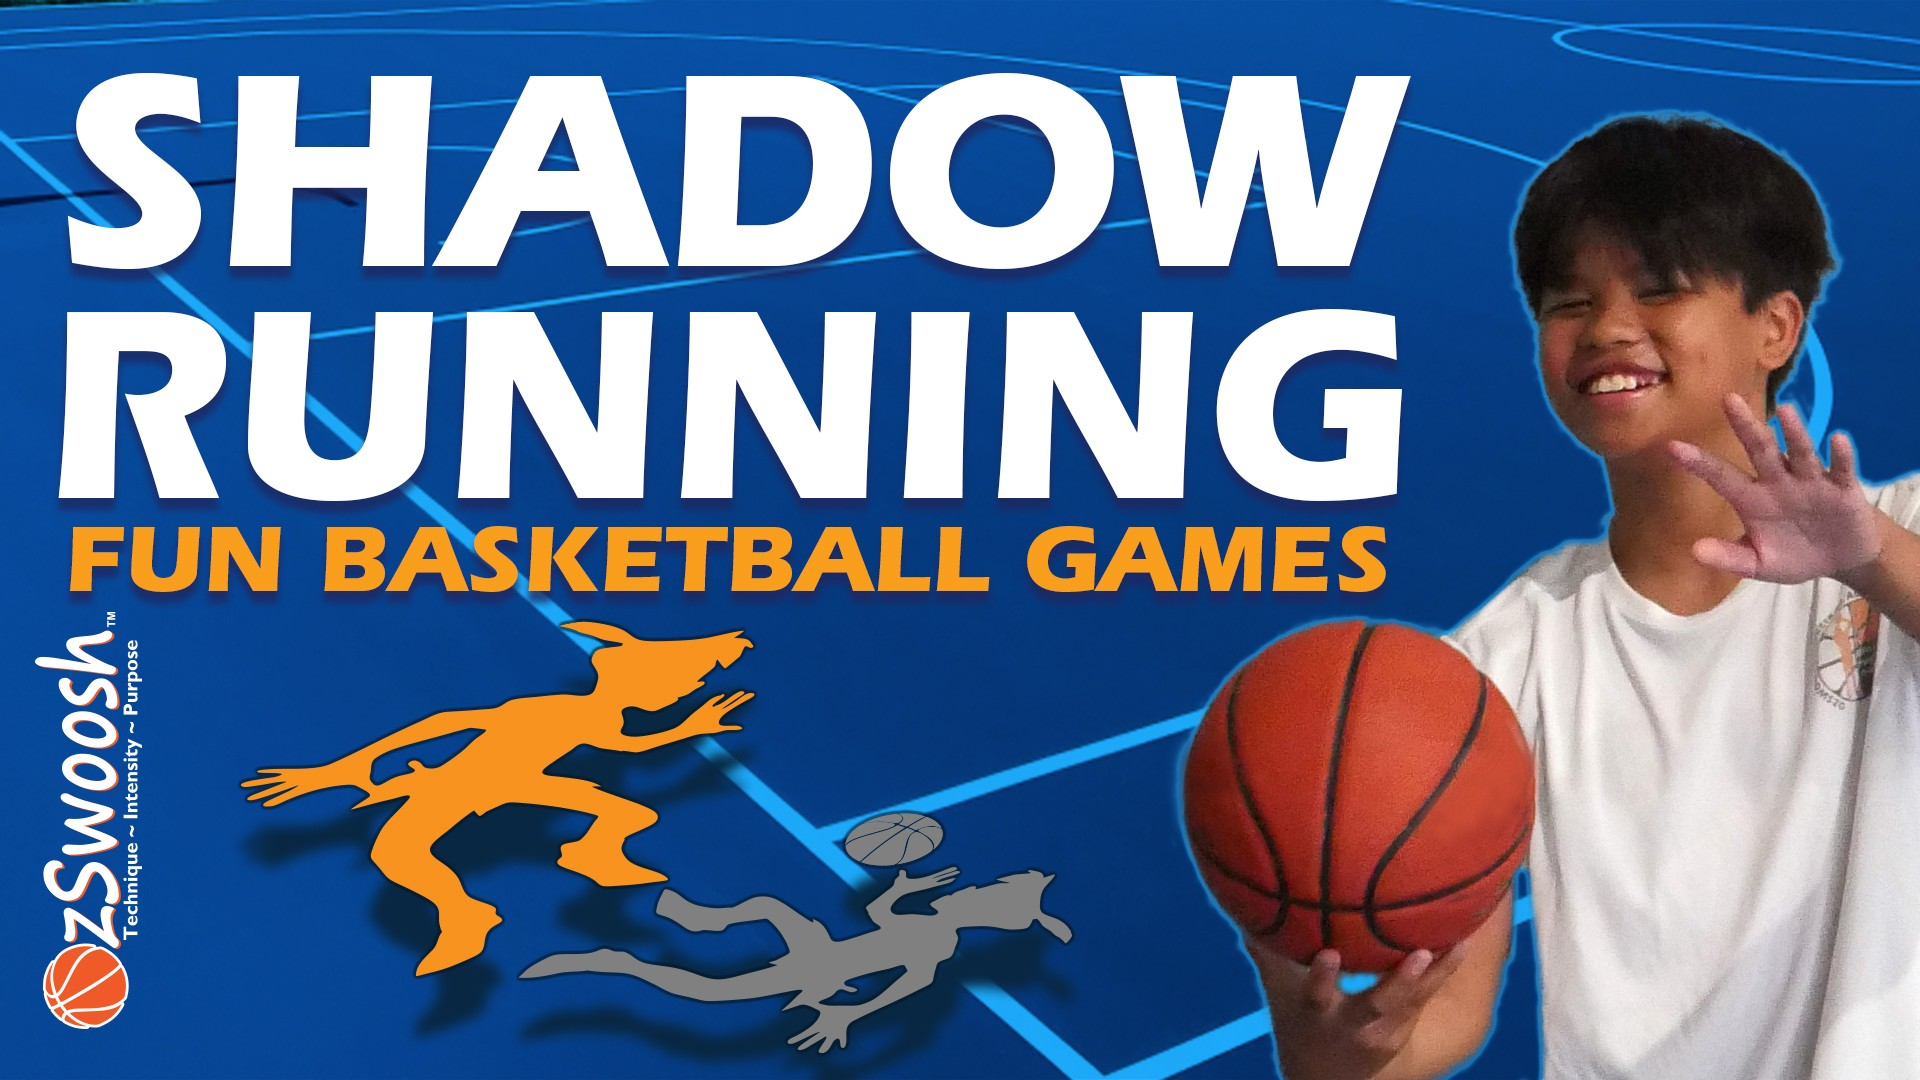 Fun Youth BASKETBALL Drills for Kids - Shadow Running (Basketball Warm Up Game)